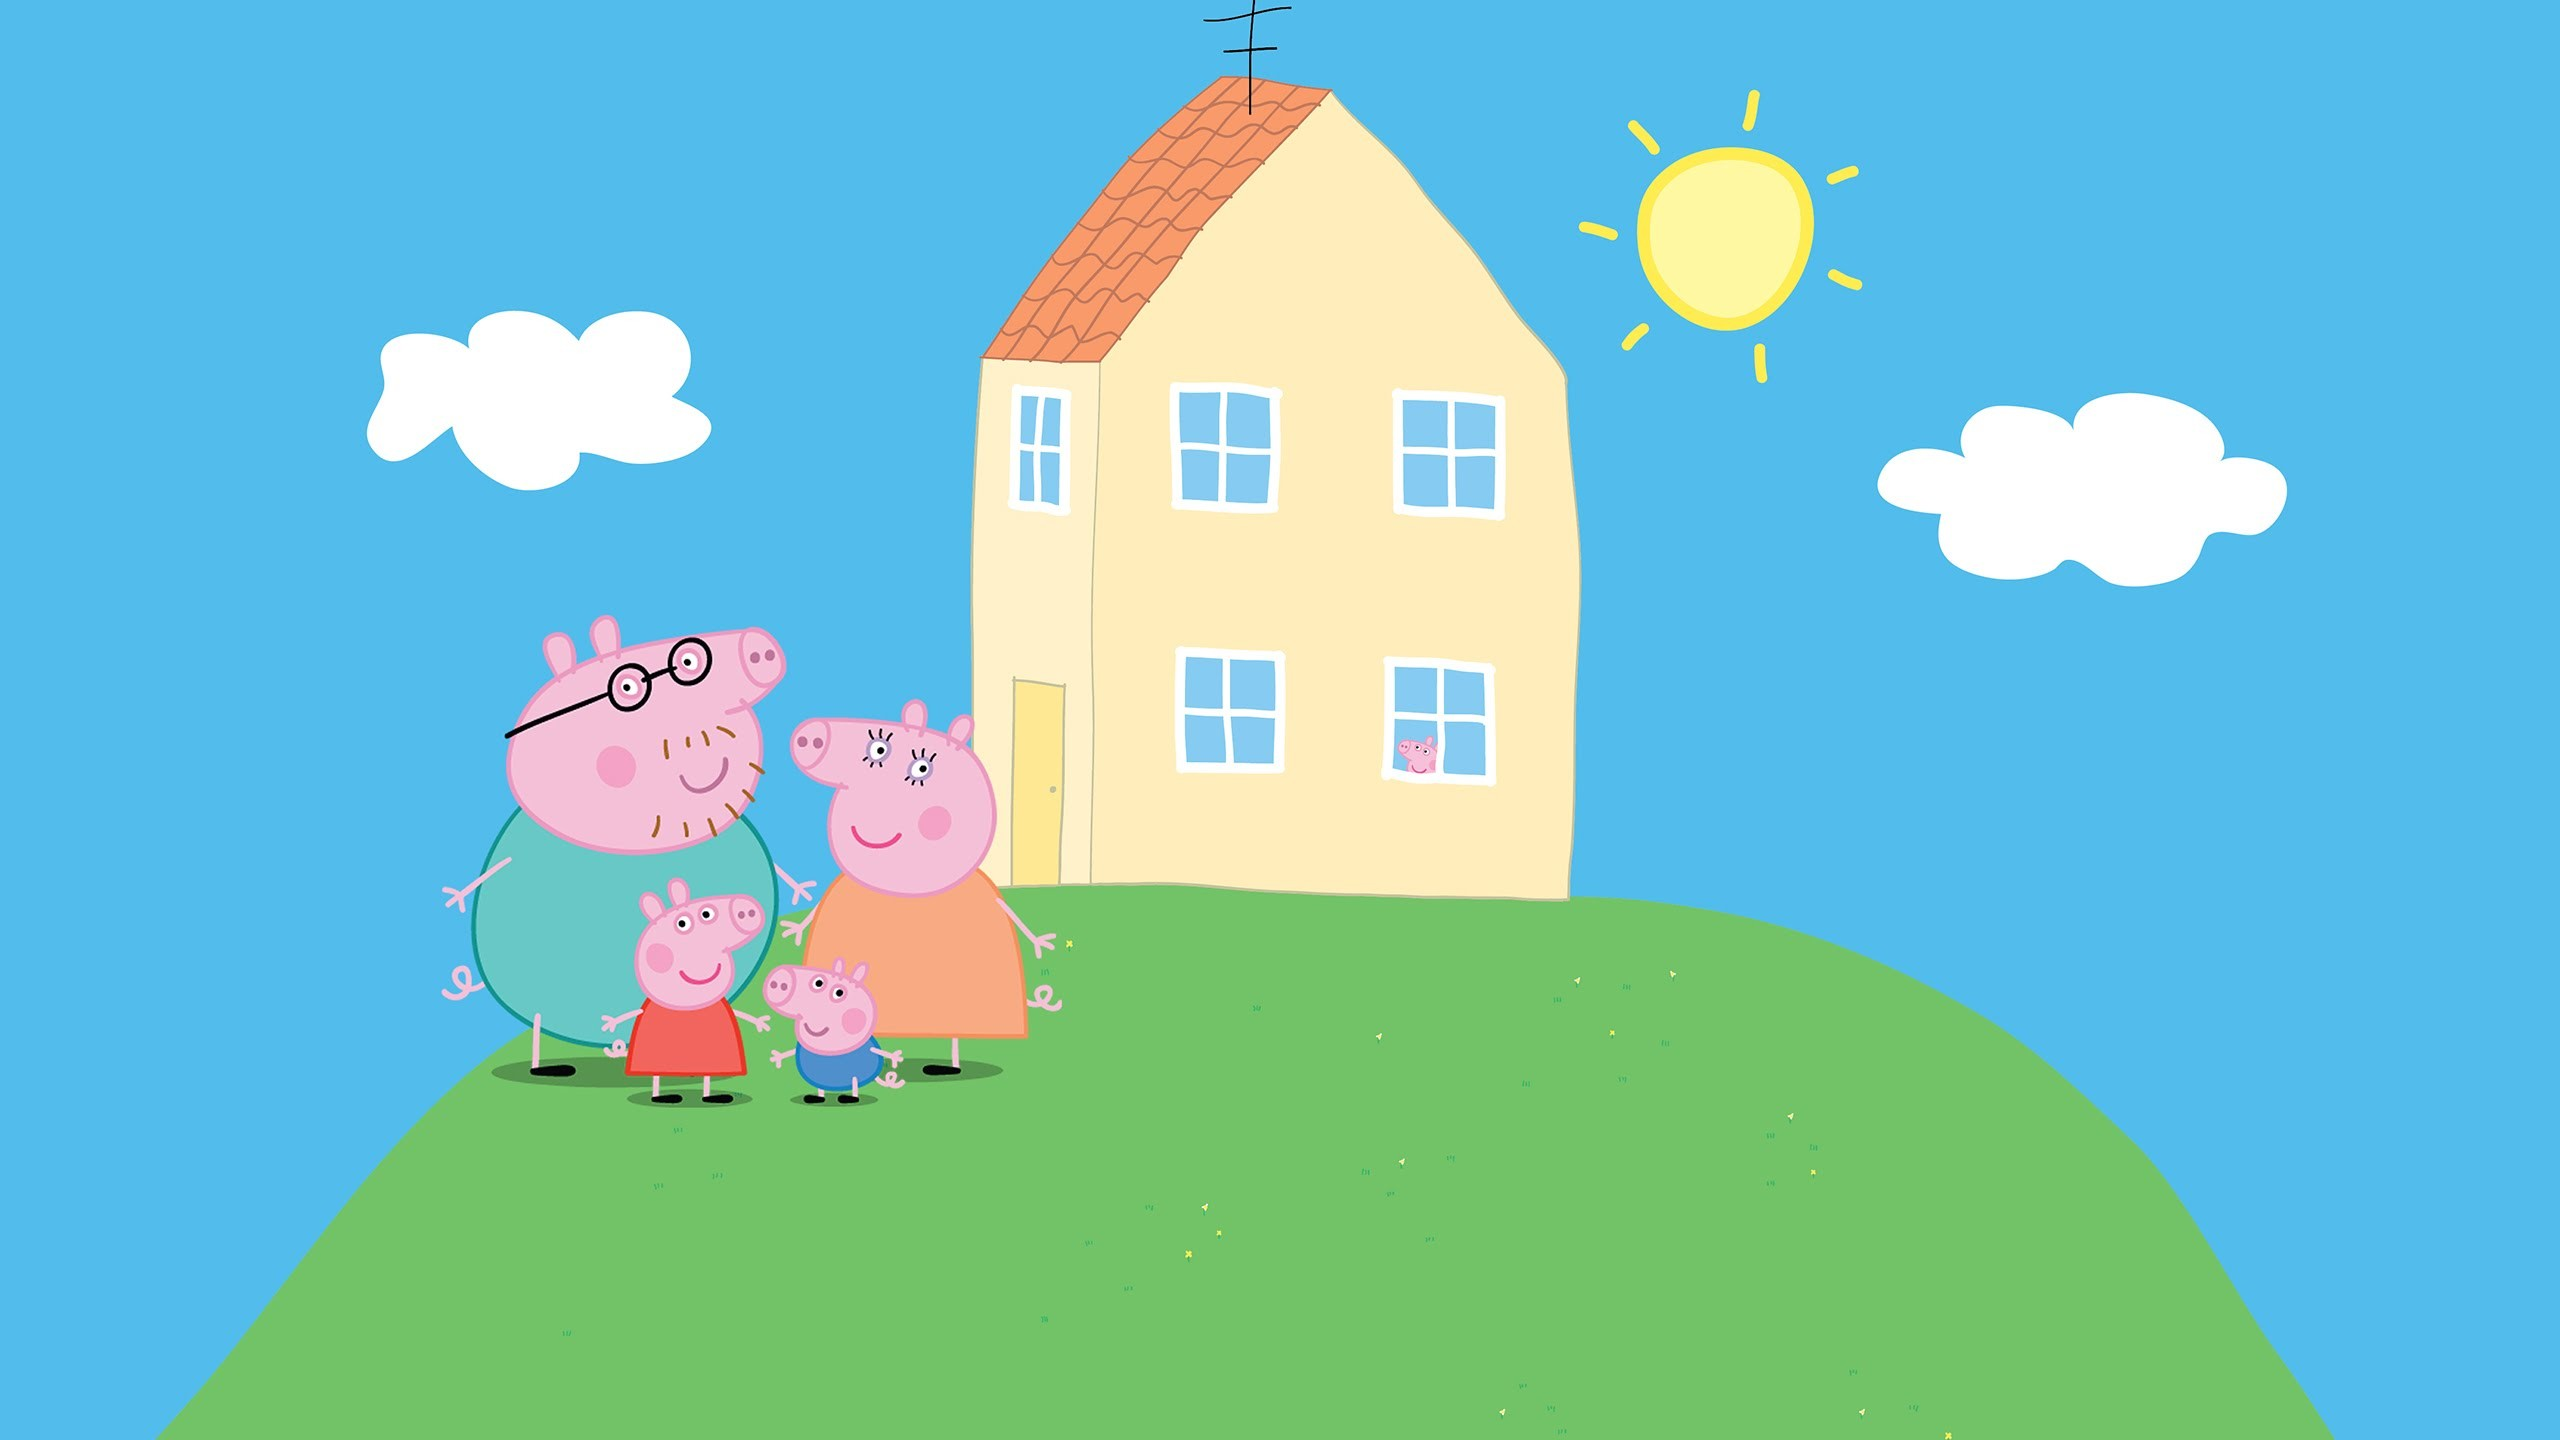 612957 download peppa pig wallpapers 2560x1440 for windows 10